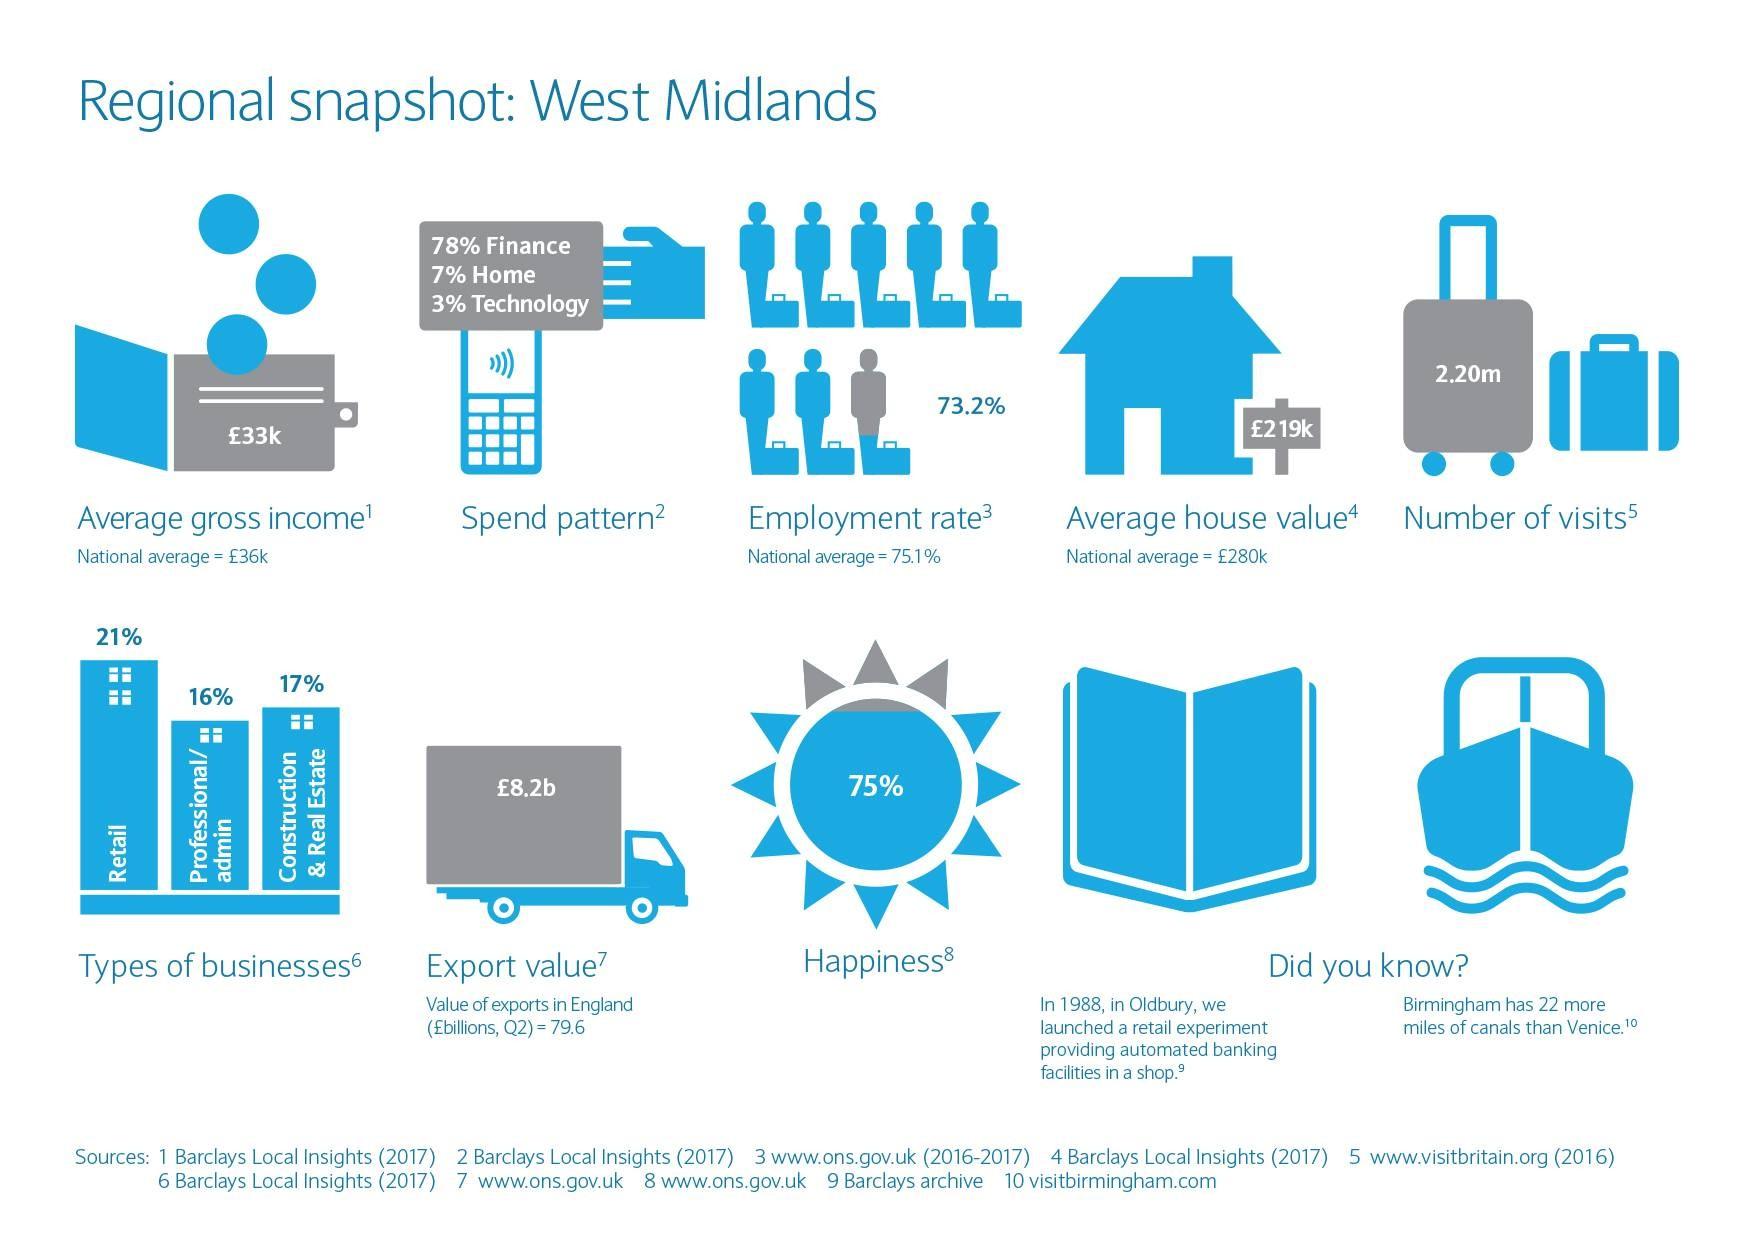 West Midlands regional snapshot